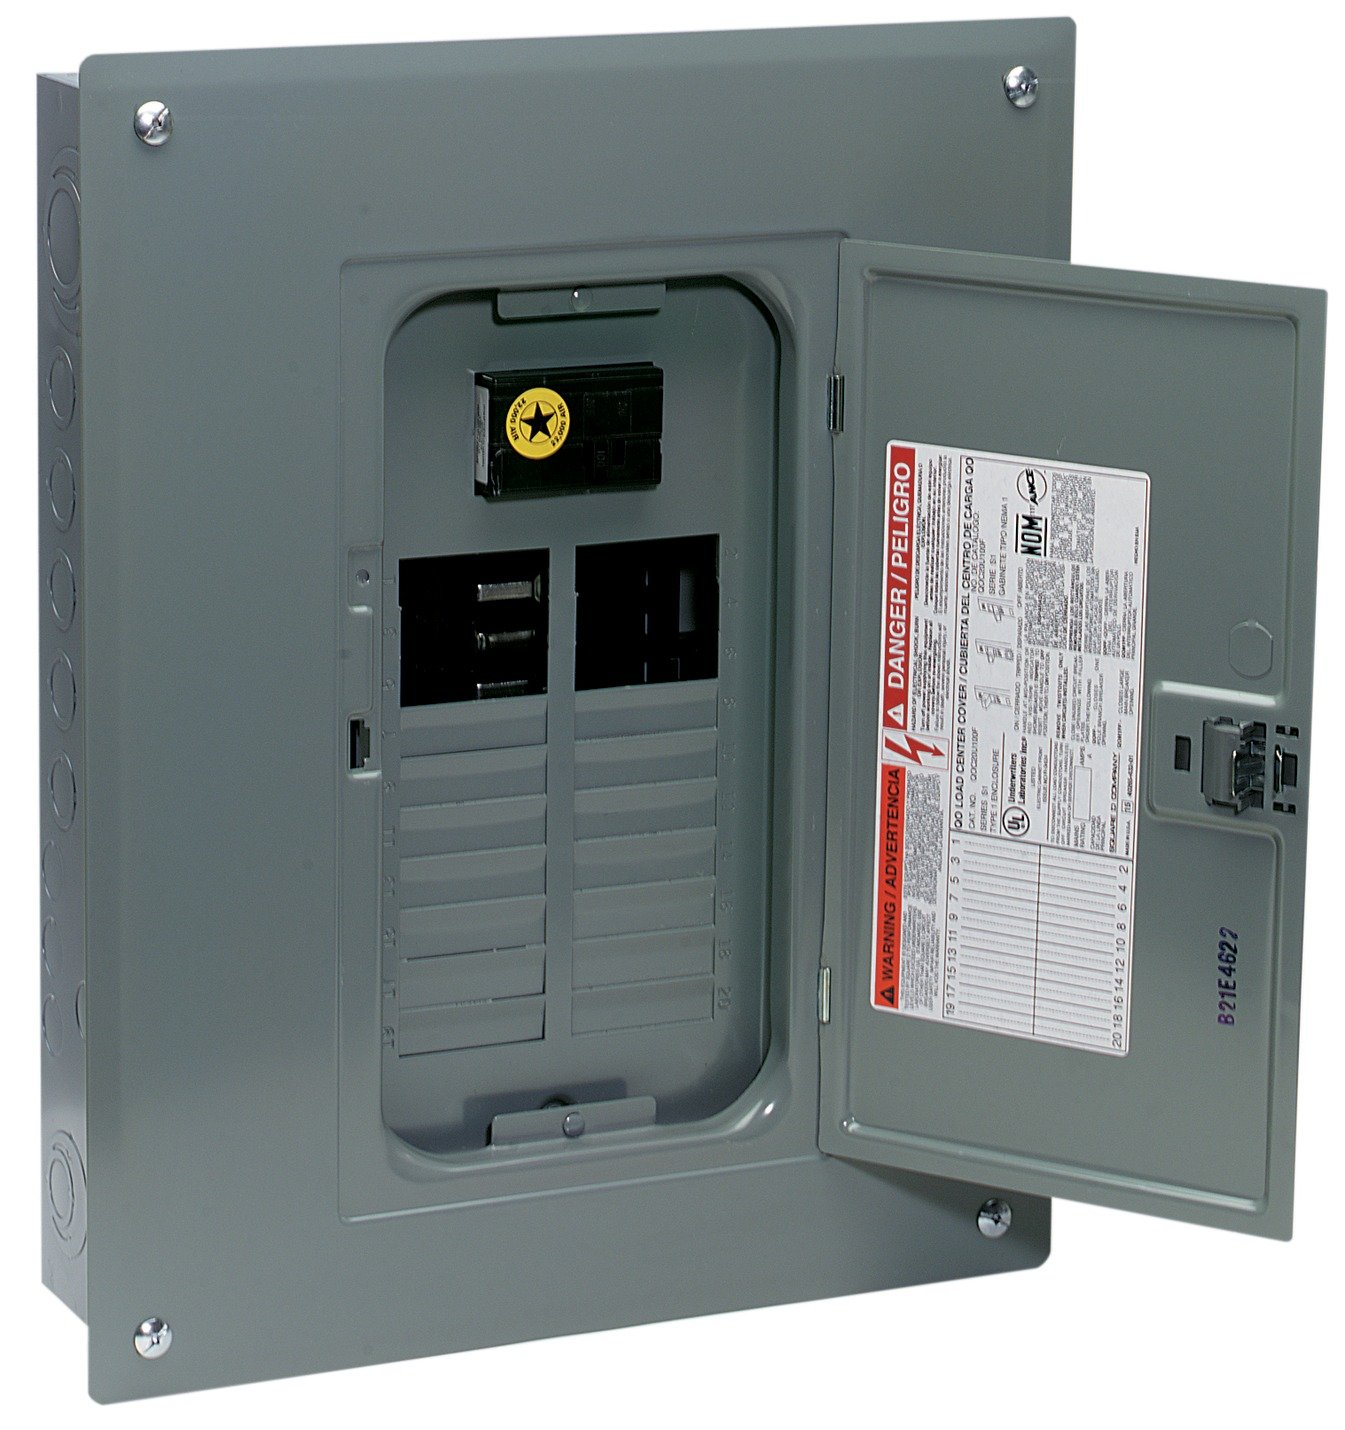 Square D By Schneider Electric Qo120m100c Qo 100 Amp 20 Space Box Also Electrical Circuit Breaker Panel Covers On Fuse Fire Indoor Main Load Center With Cover Breakers